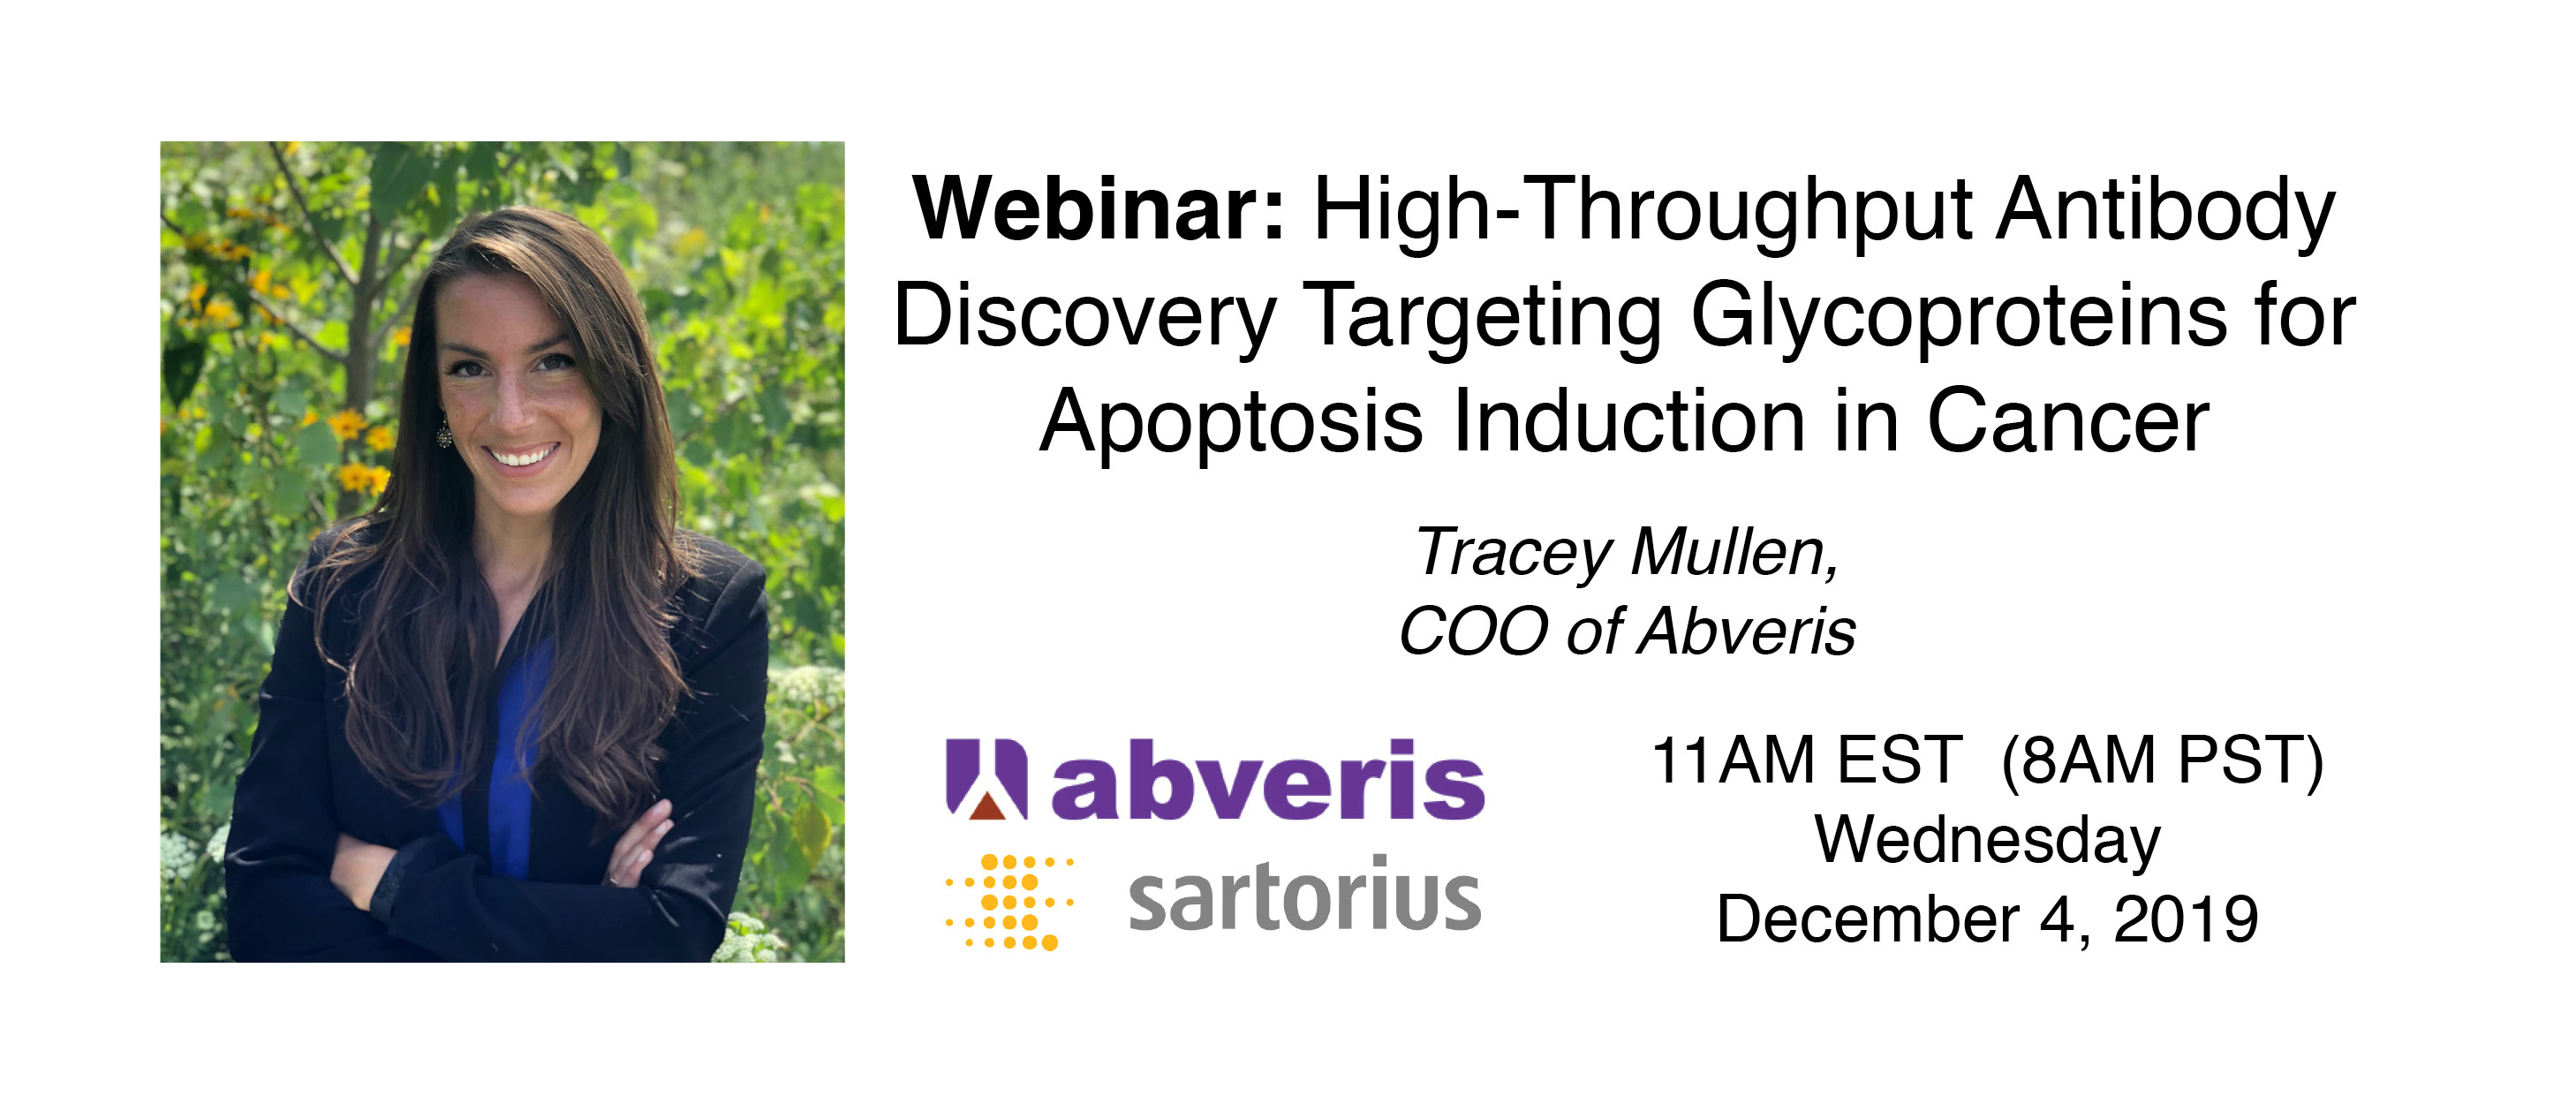 WEBINAR: High-Throughput Antibody Discovery Targeting Glycoproteins for Apoptosis Induction in Cancer